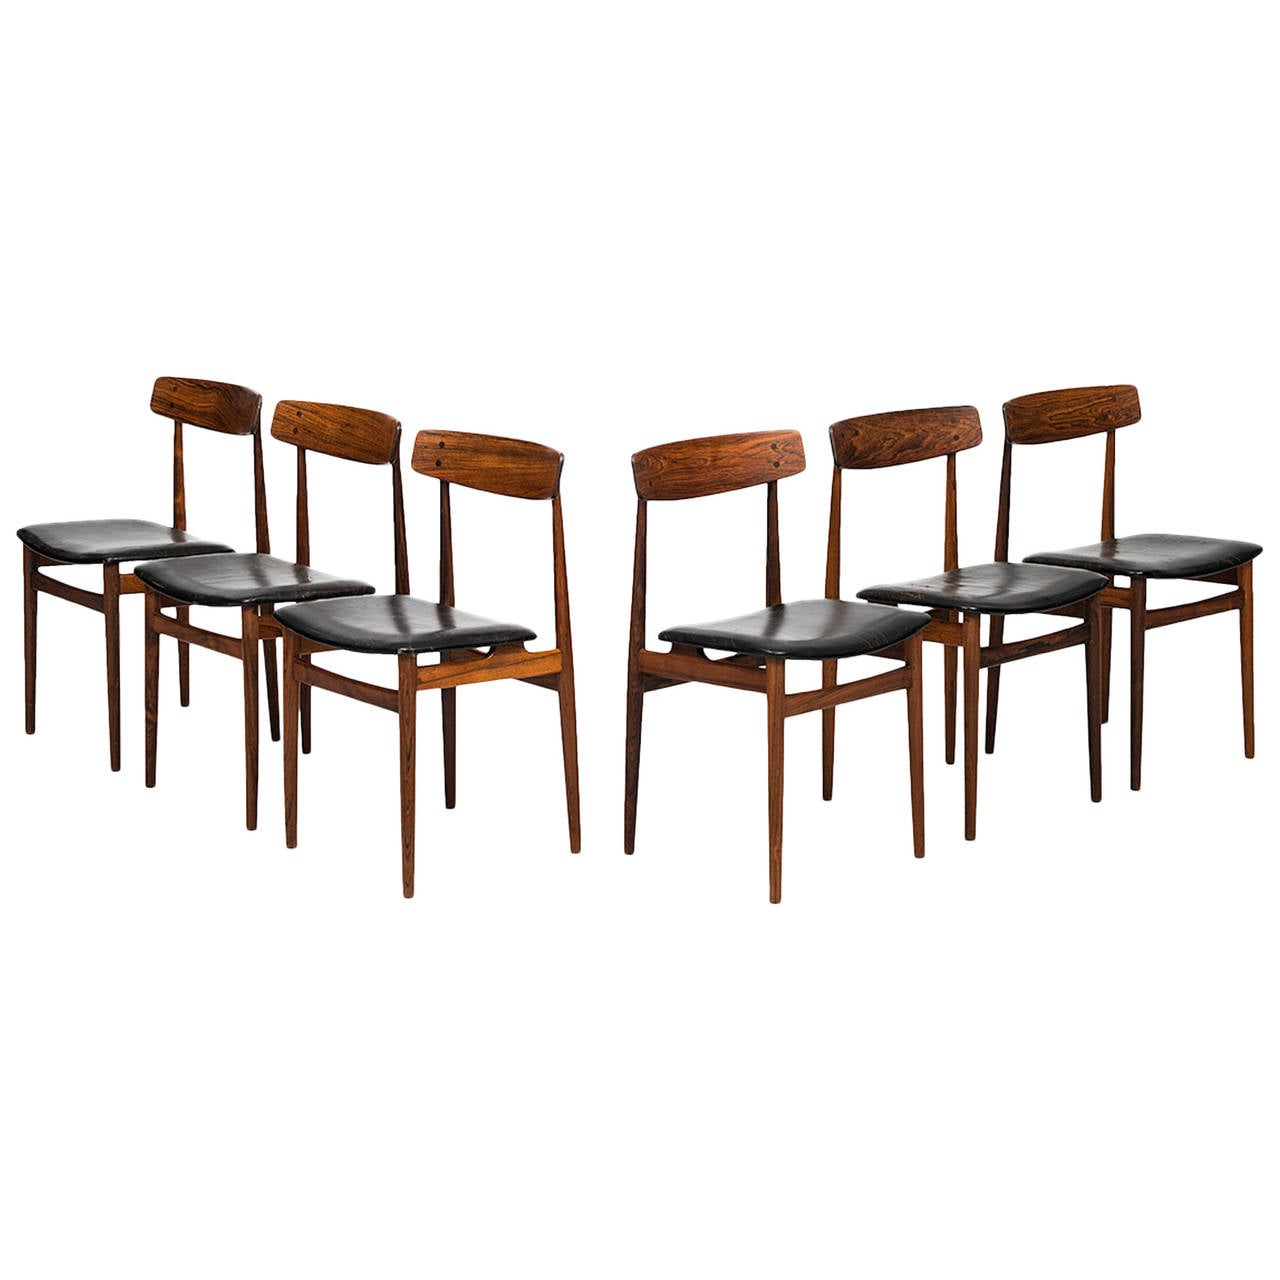 midcentury dining chairs in rosewood and black leather for sale at